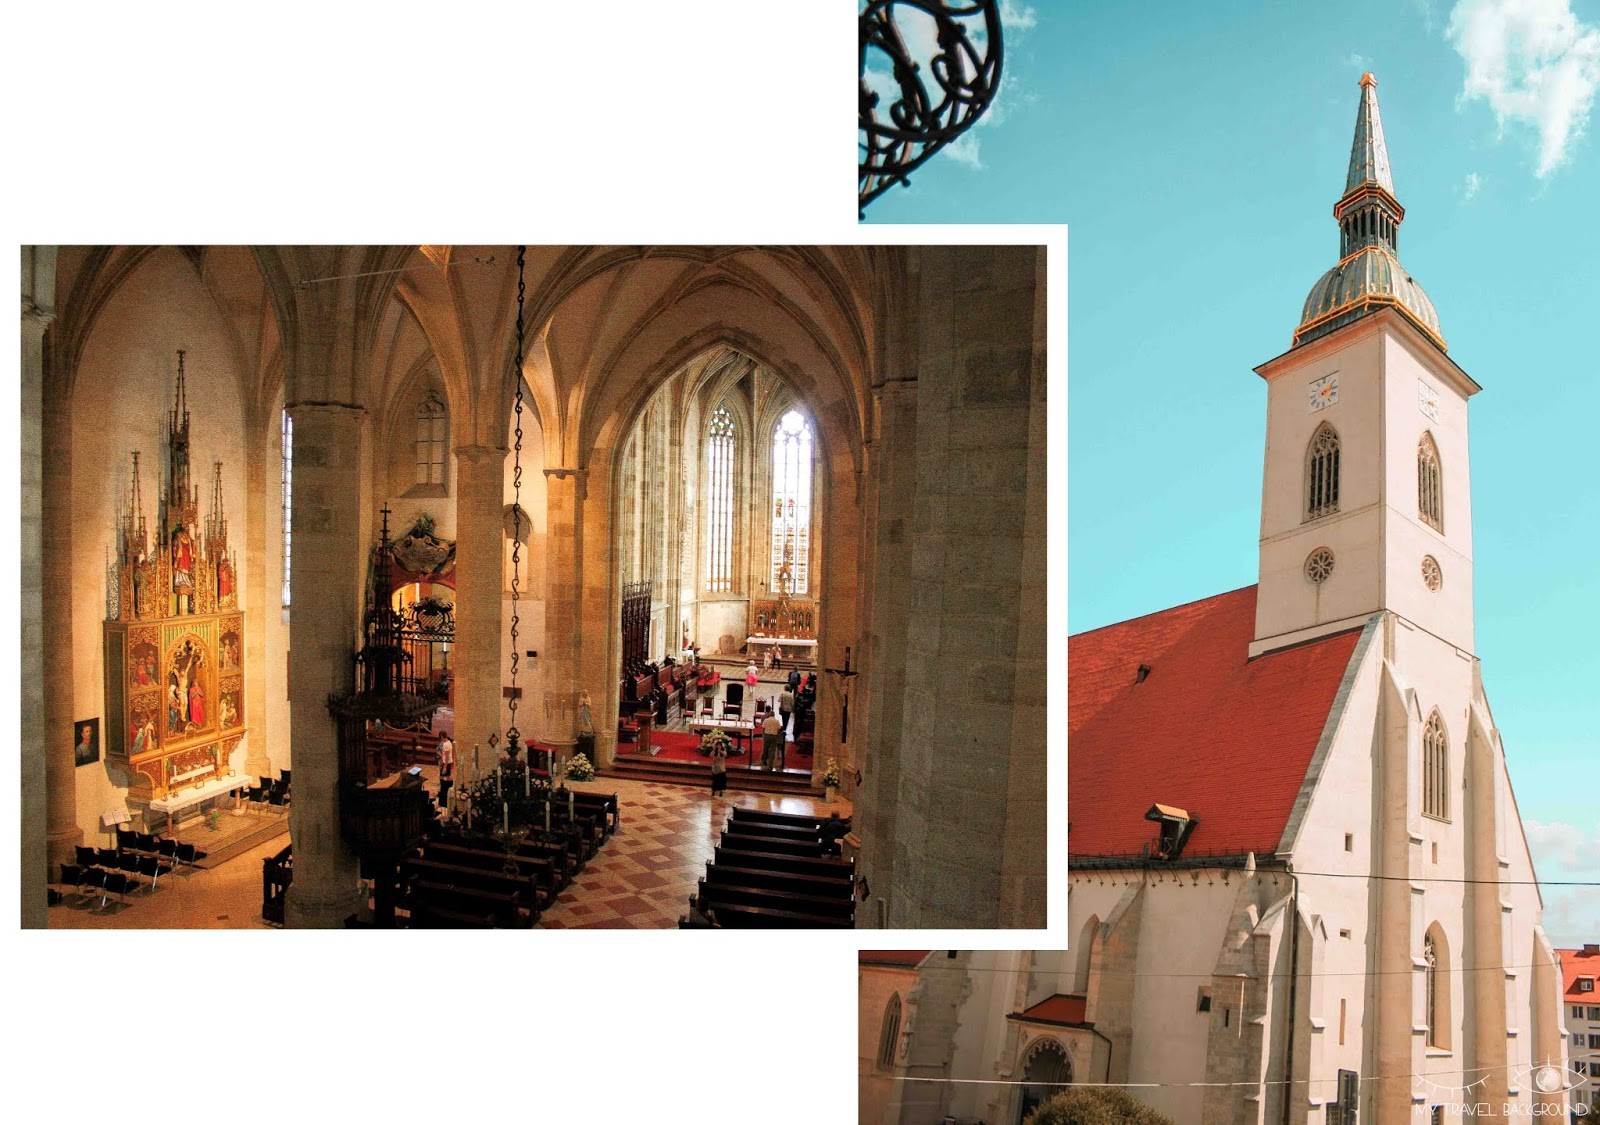 My Travel Background : visiter Bratislava, la capitale de la Slovaquie, en 1 jour - Cathédrale Saint-Martin